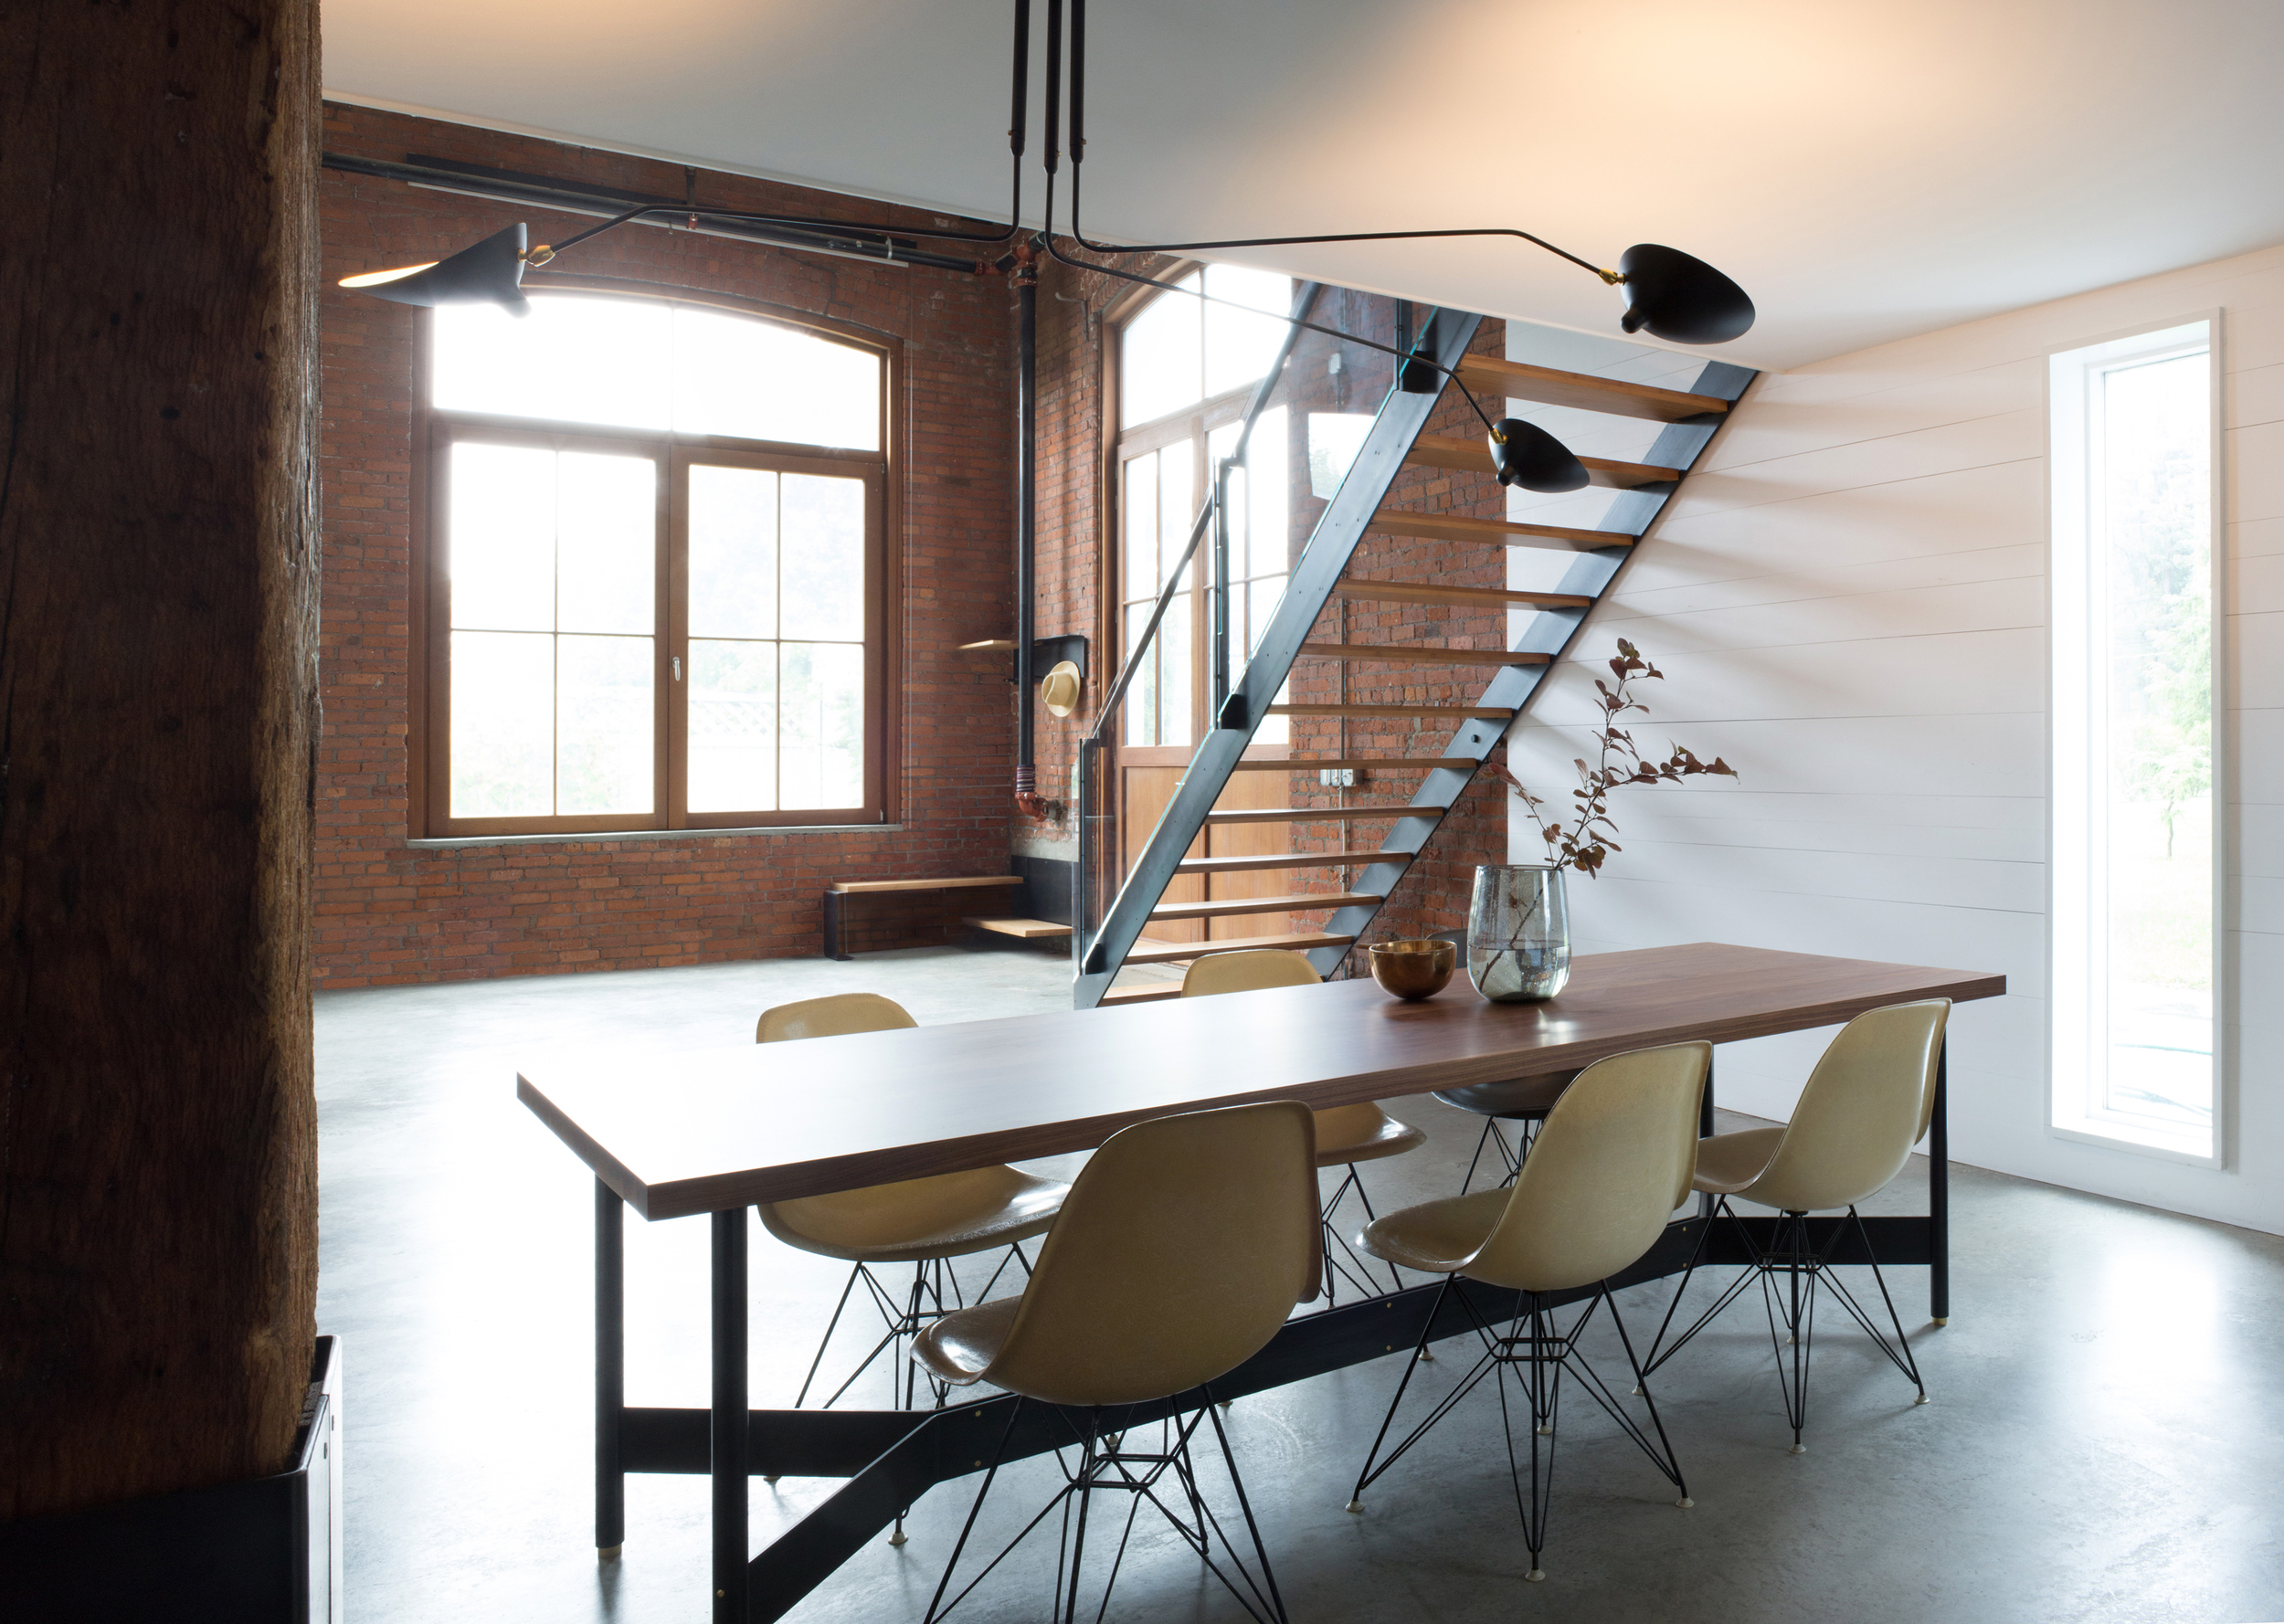 atlas industries interior design services beacon new york loft renovation converted industrial building mezzanine sleeping loft storage guest bedroom steel glass hardwood